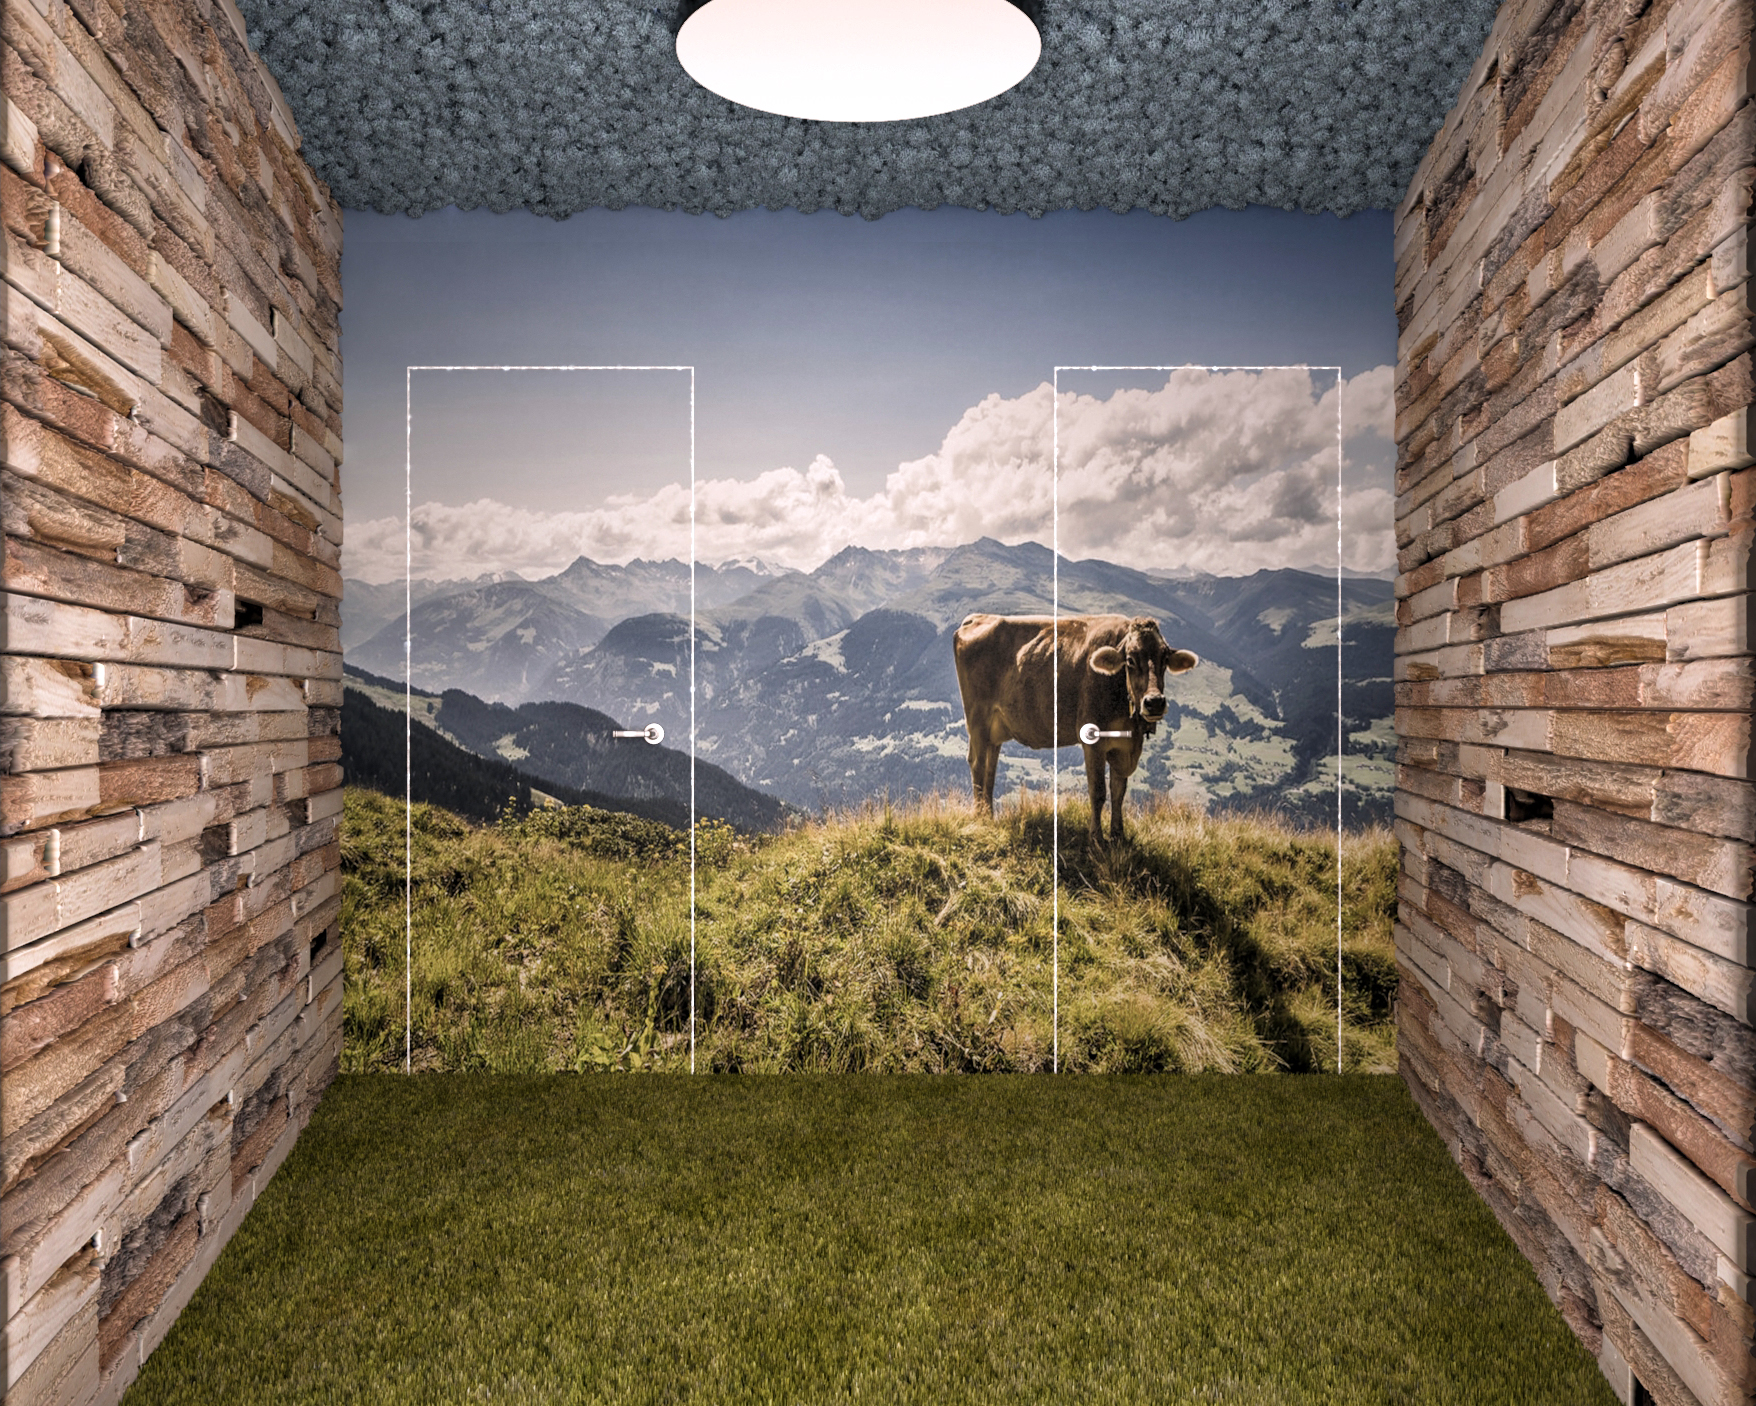 biophilic design in the home, office or gym